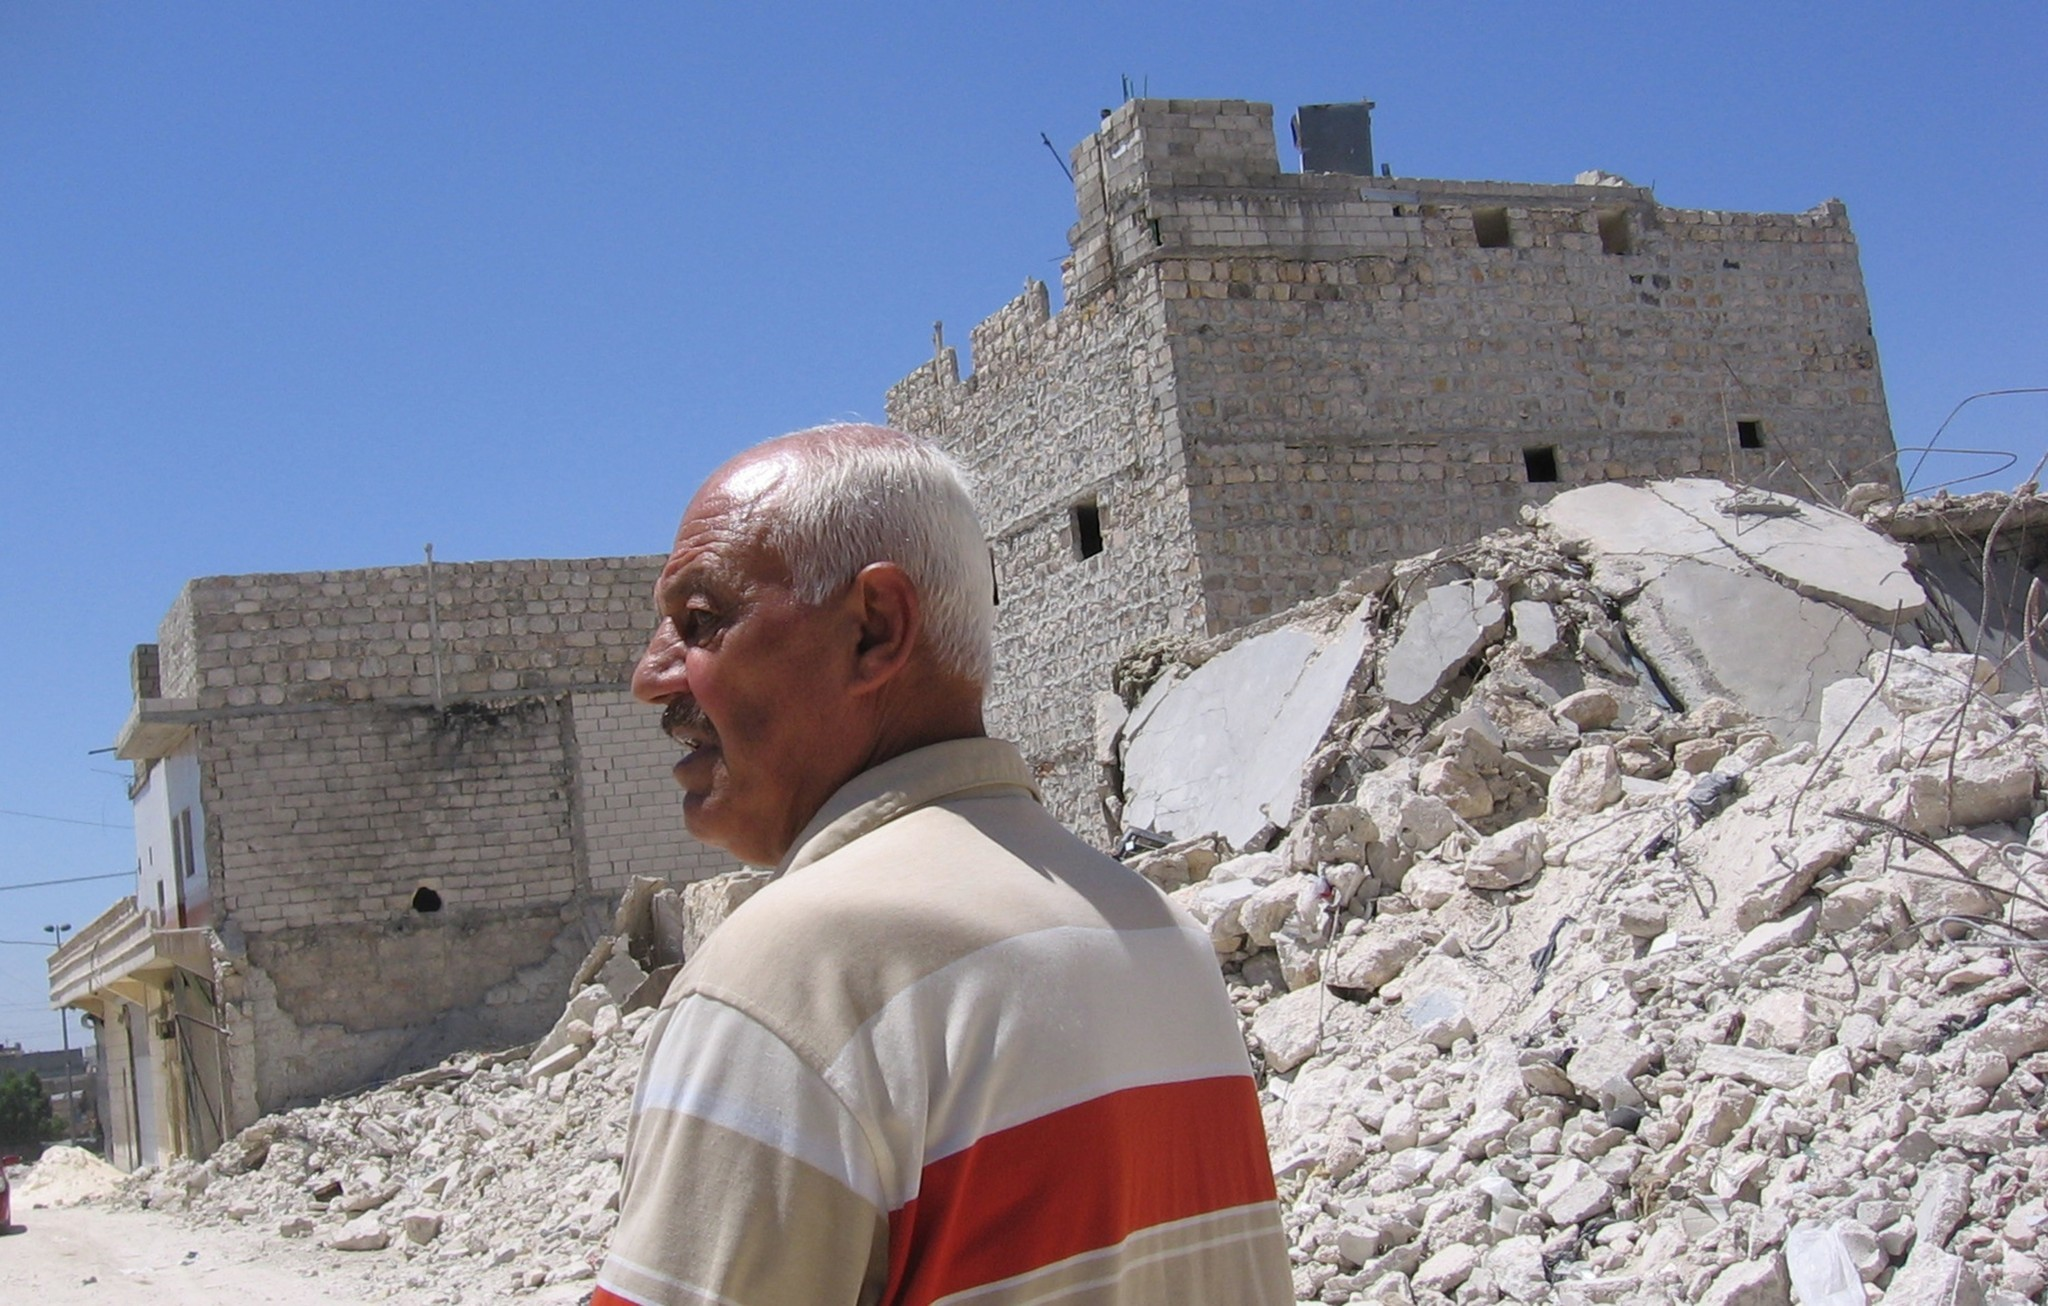 Rebuilding in Syria - Destruction and hope in Syria